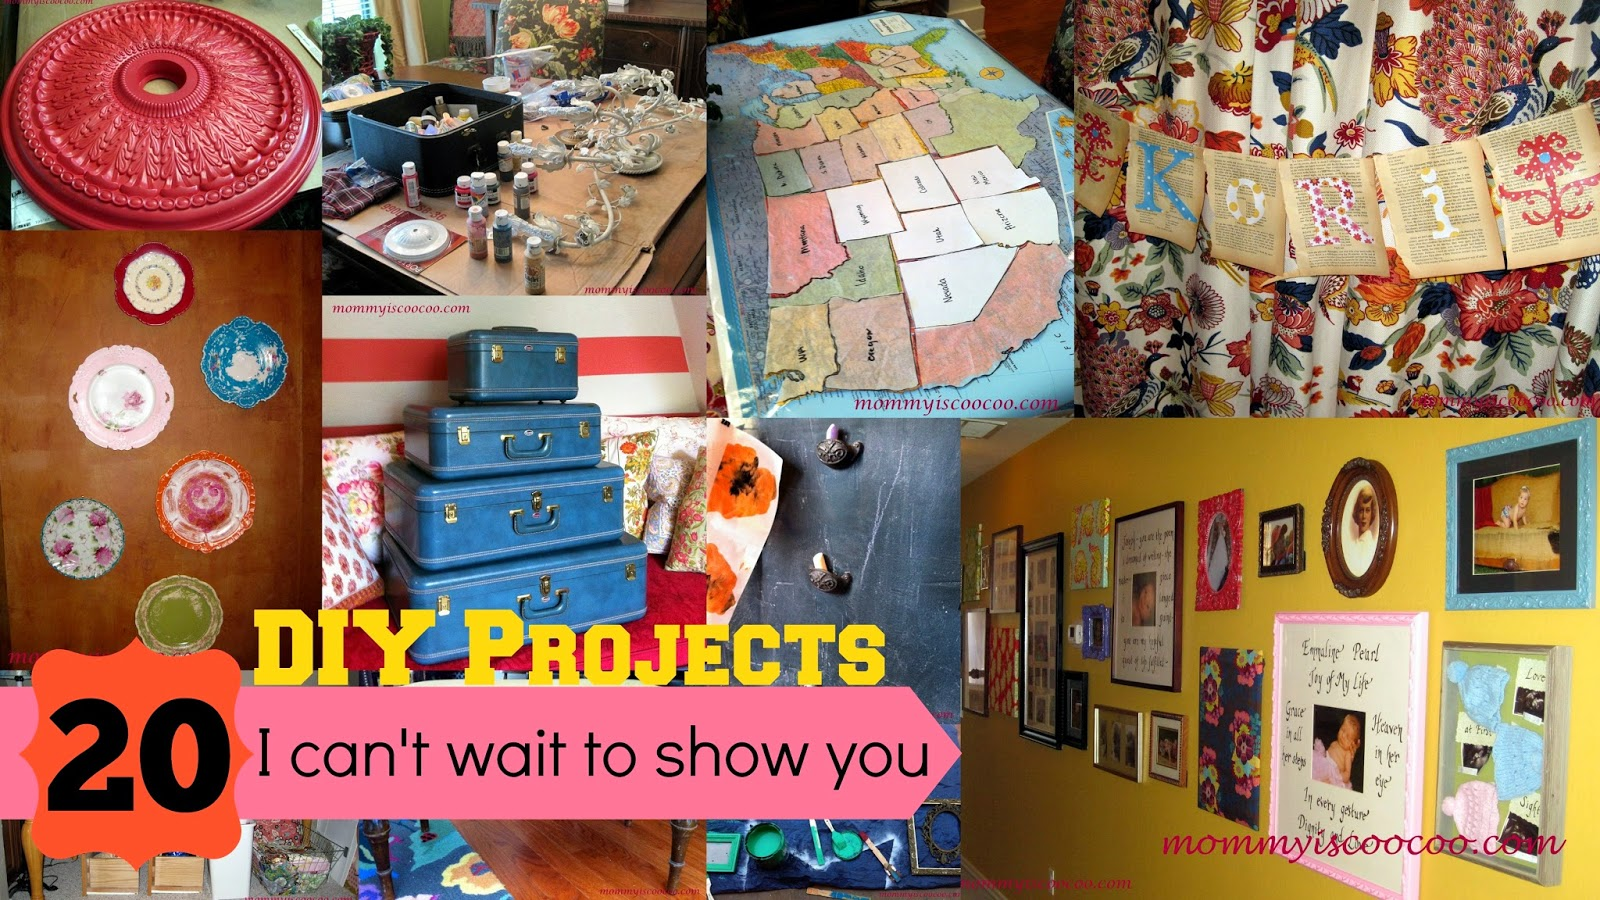 DIY projects, gallery wall, ceiling medallion, plate wall, vintage luggage from mommy is coocoo